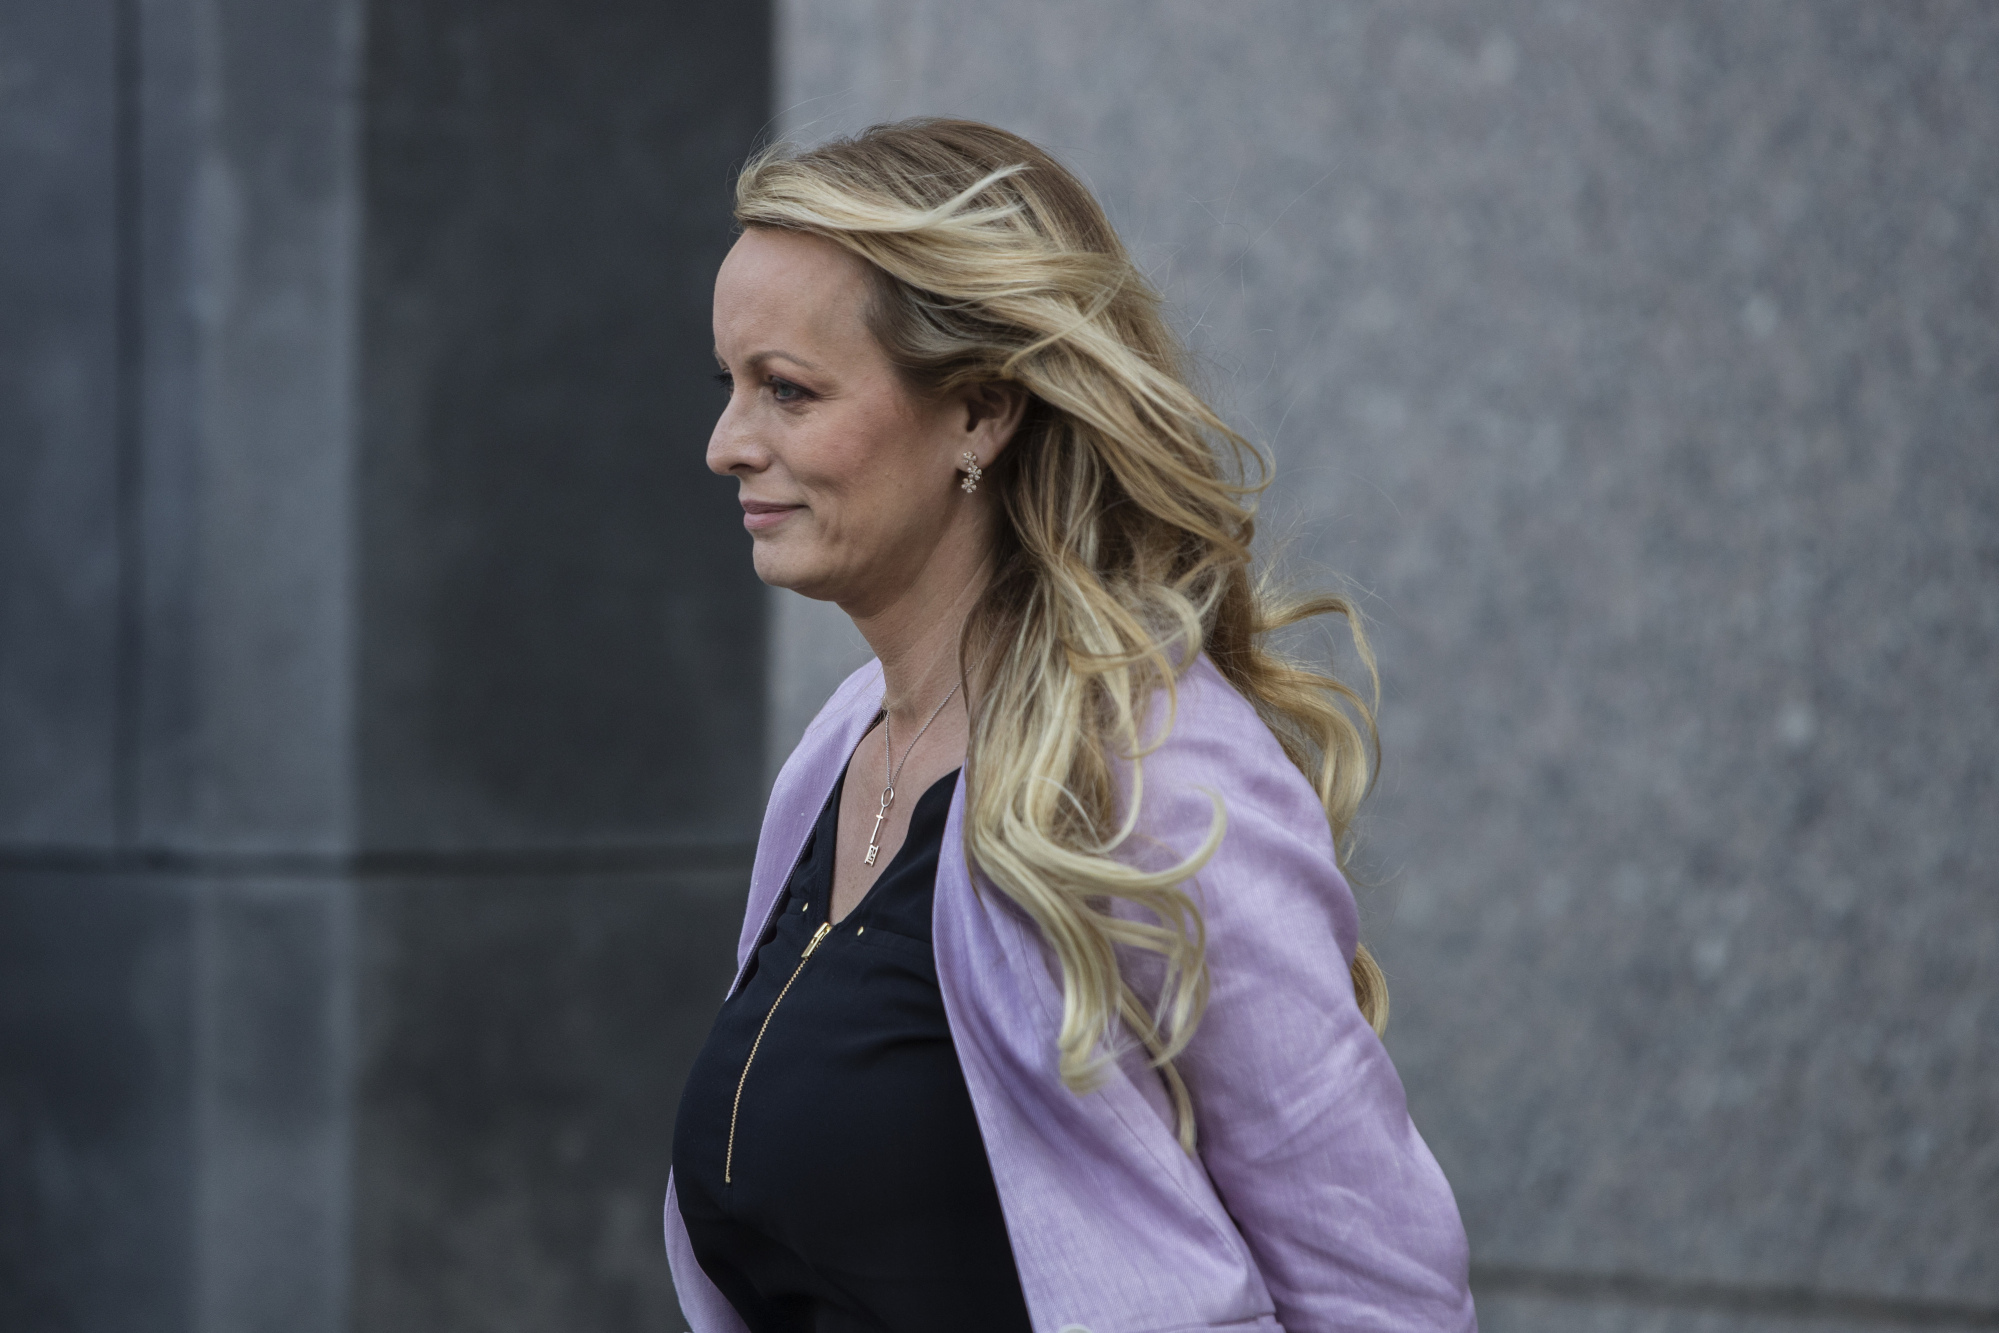 Stormy Daniels Is Ordered to Pay Trump $293,000 in Fees and Sanctions